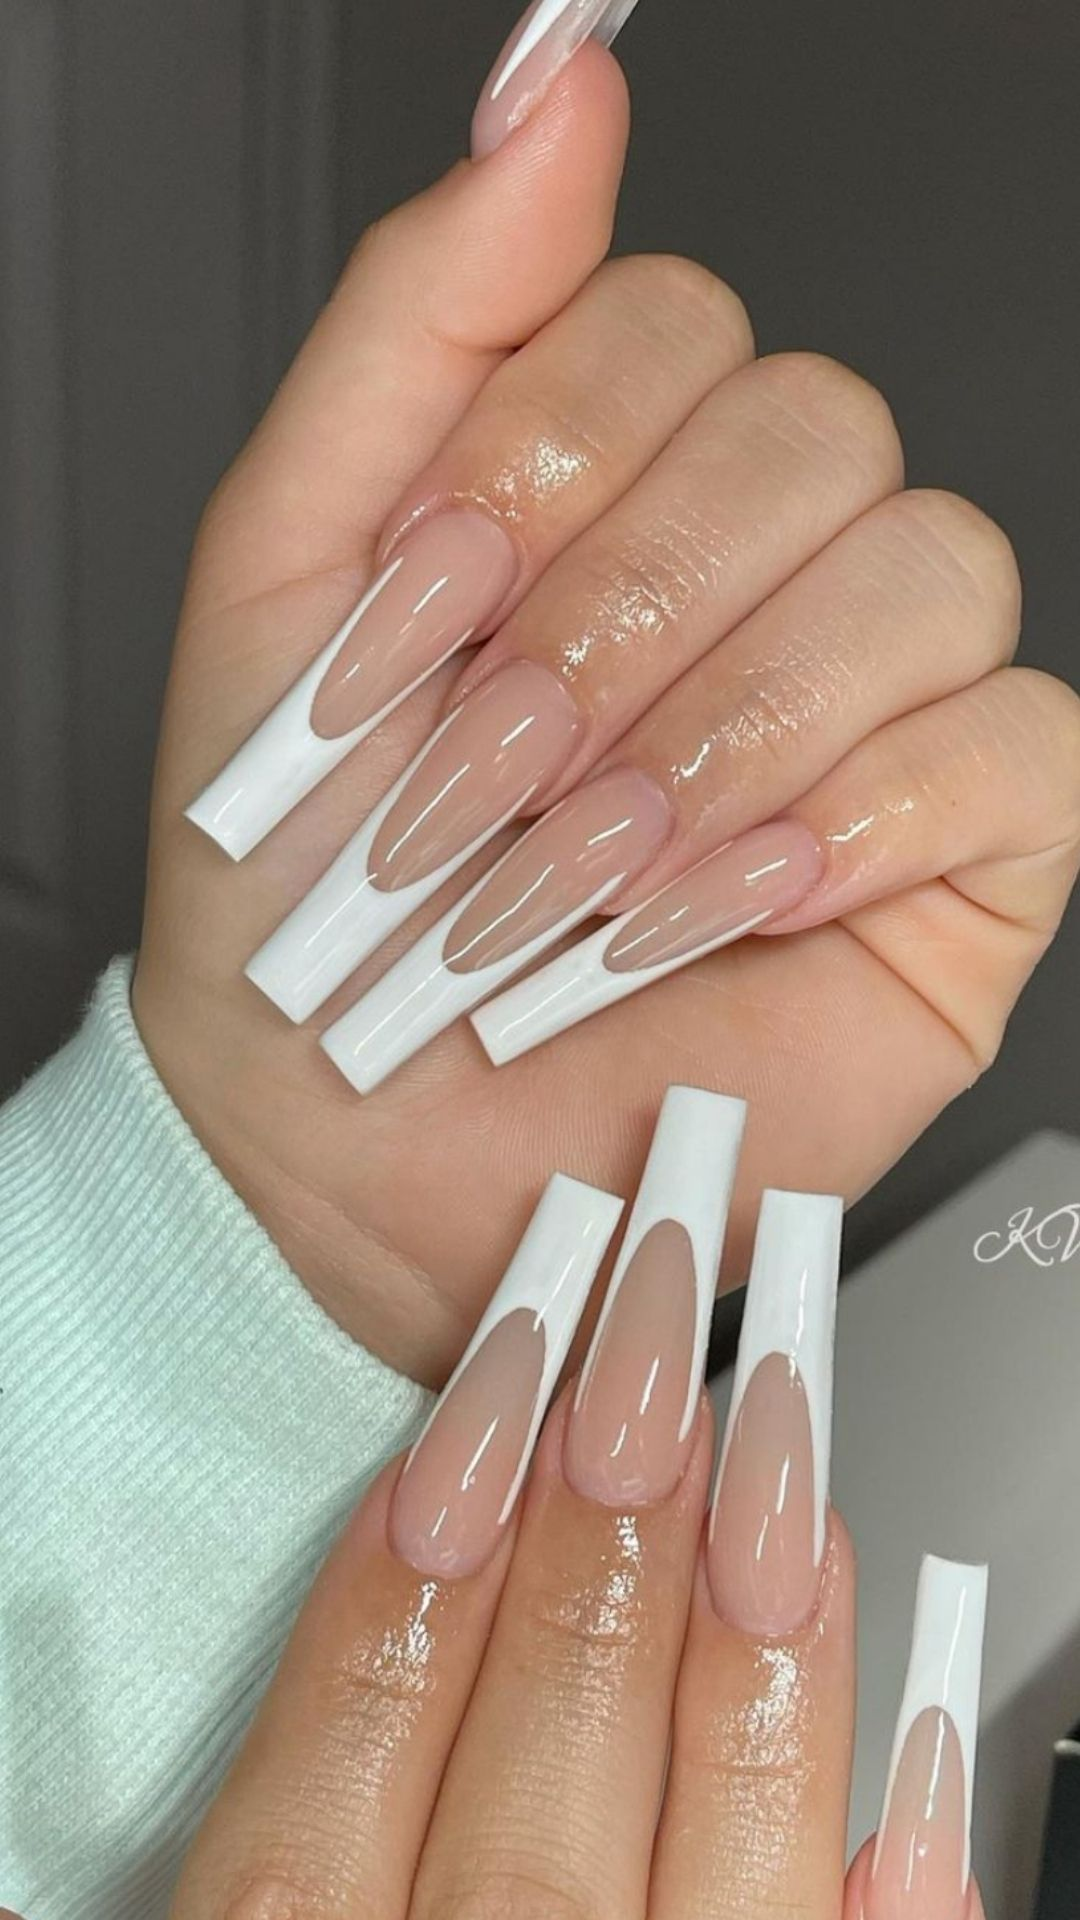 Best white tip nails design & pink and white nails to try 2021